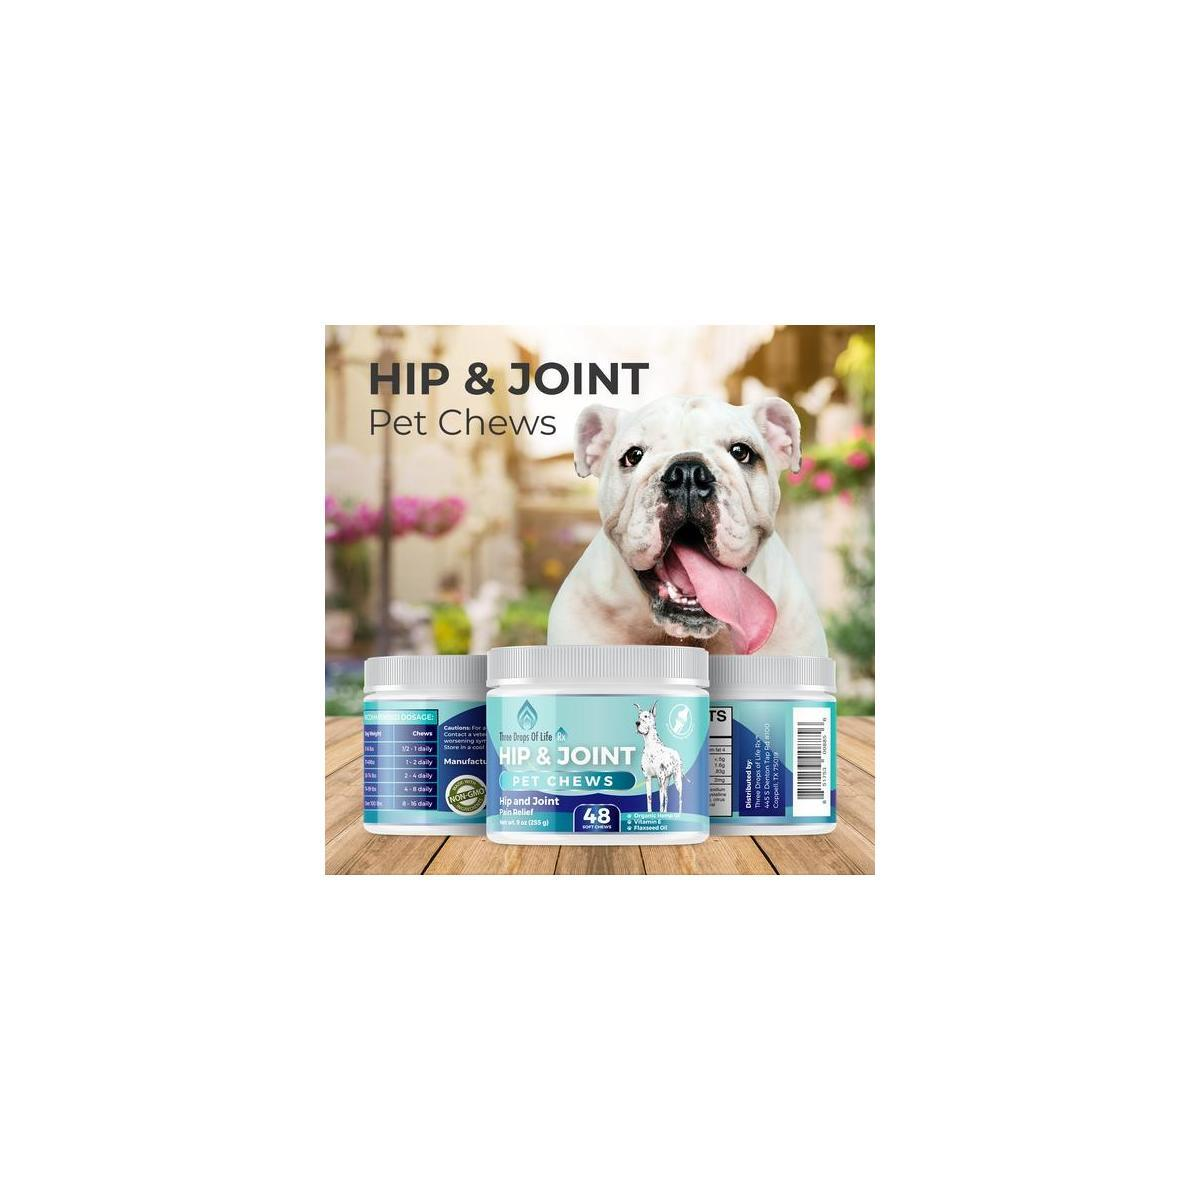 Hip and Joint Pet Chews - Veterinarian Recommended